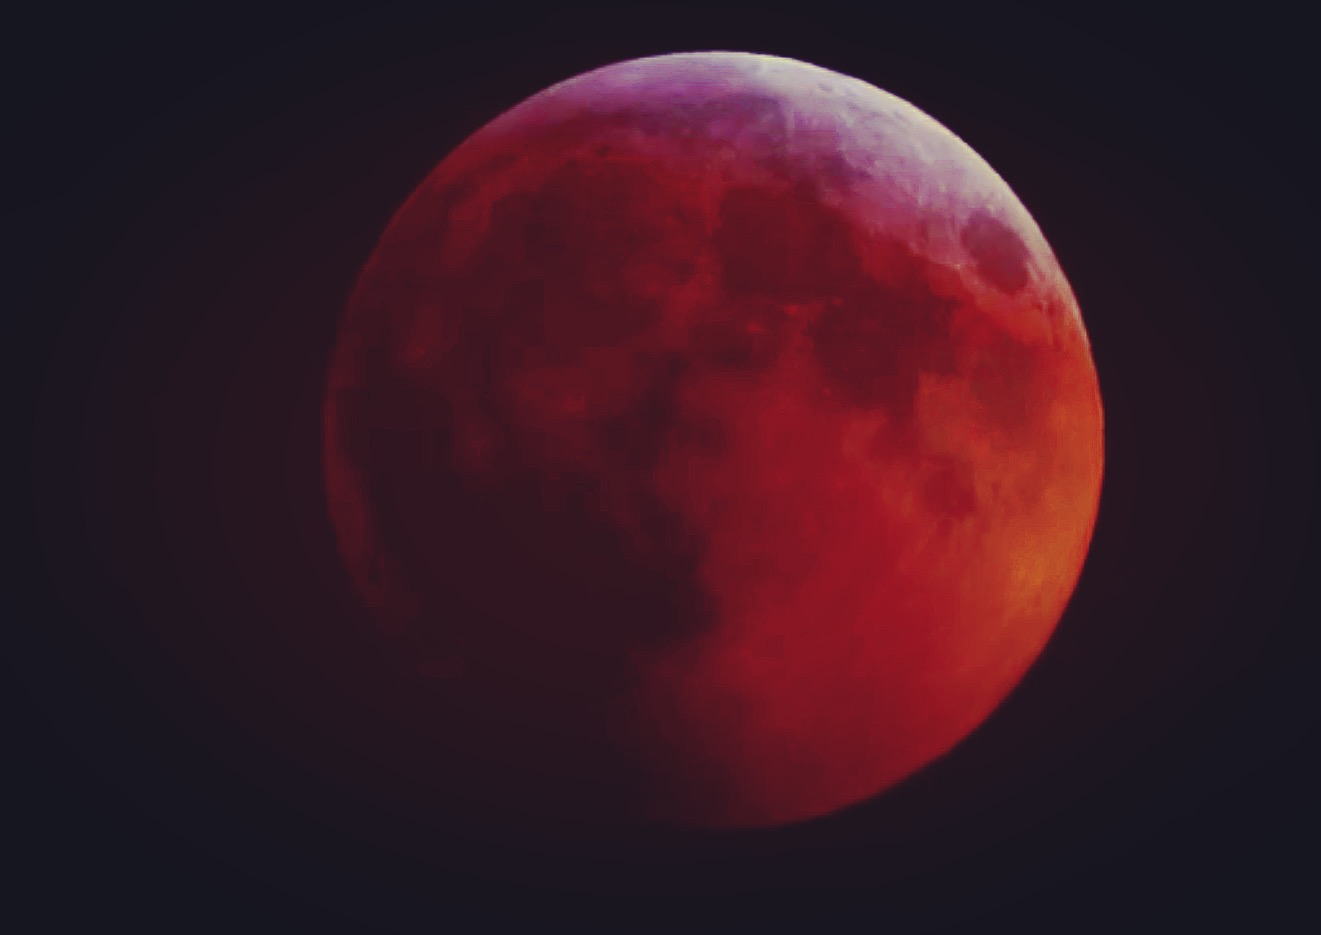 The Blood Moon at almost full redness.